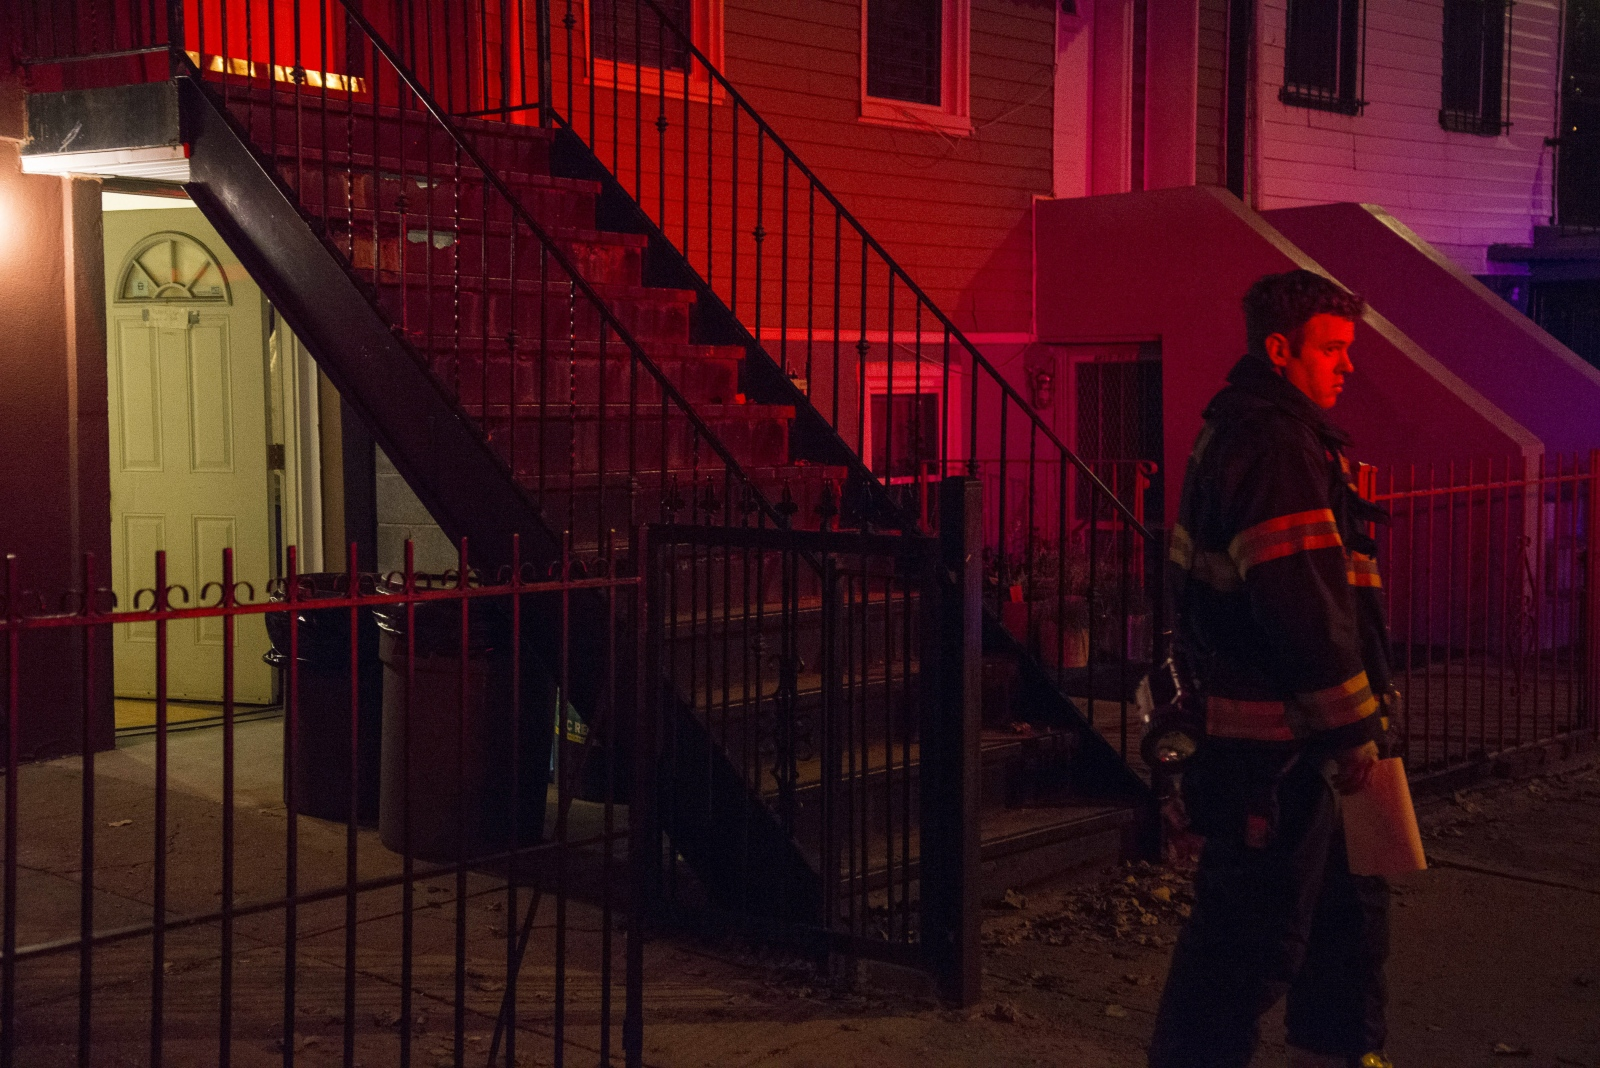 Lieutenant McDonald leaves the house of a 102-year-old woman to usher the medical unit inside.